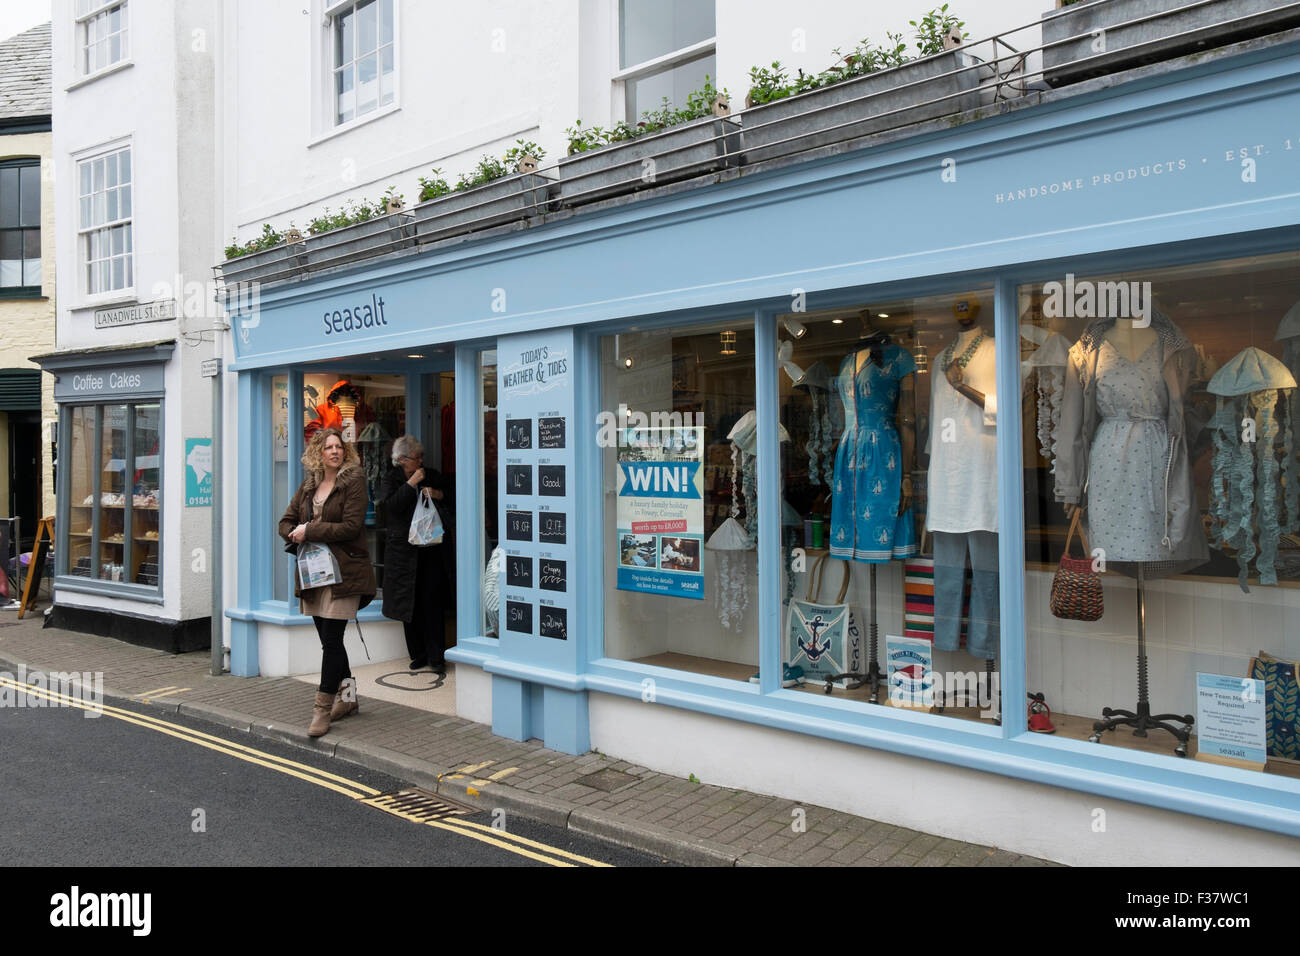 Seasalt clothes shop Padstow Cornwall UK. - Stock Image